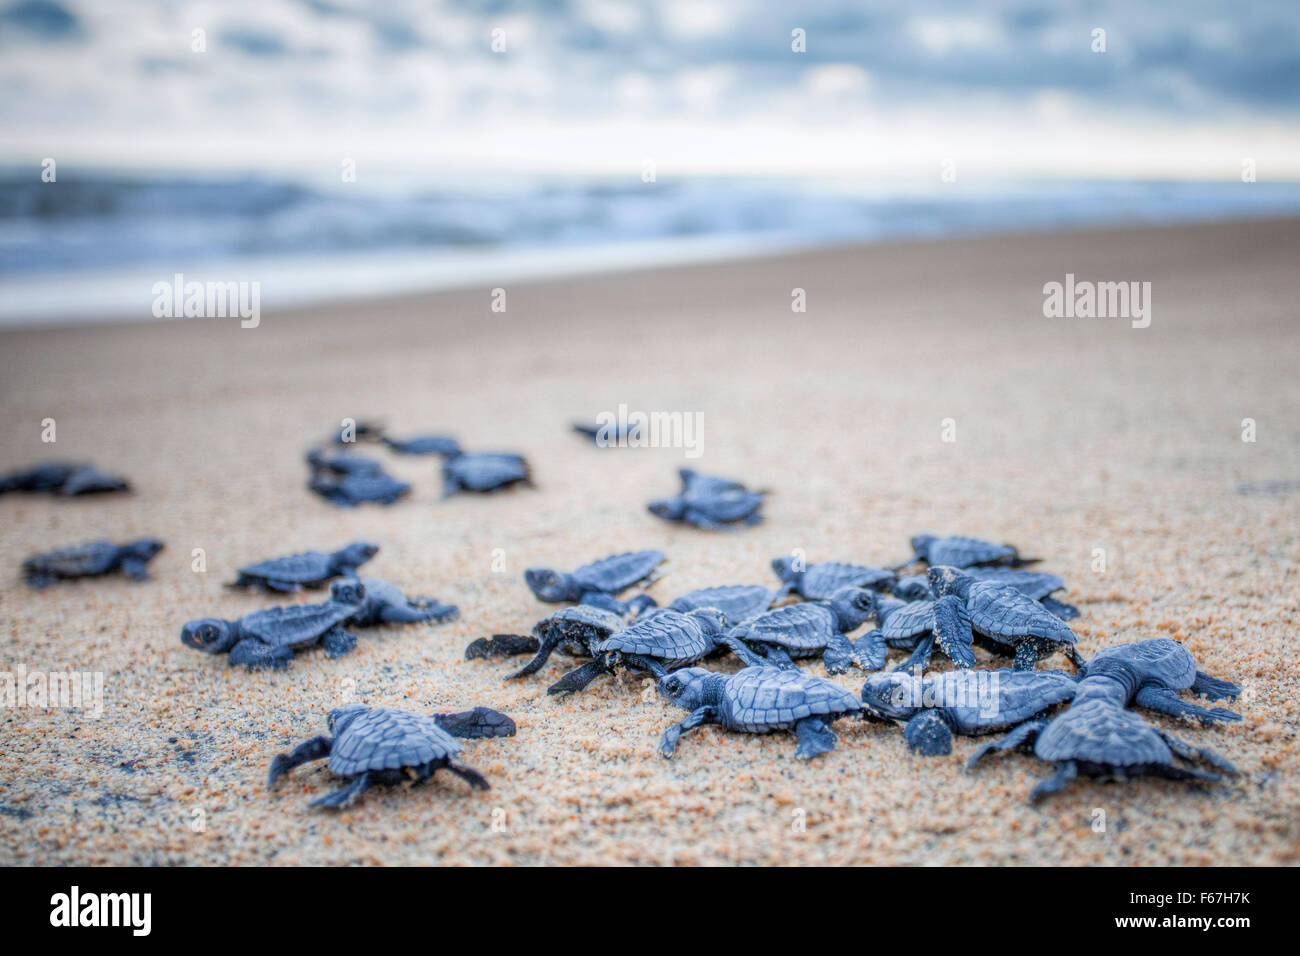 Baby Olive Ridley turtles head out to sea for the first time at Ixtapilla, Michoacan, Mexico. - Stock Image